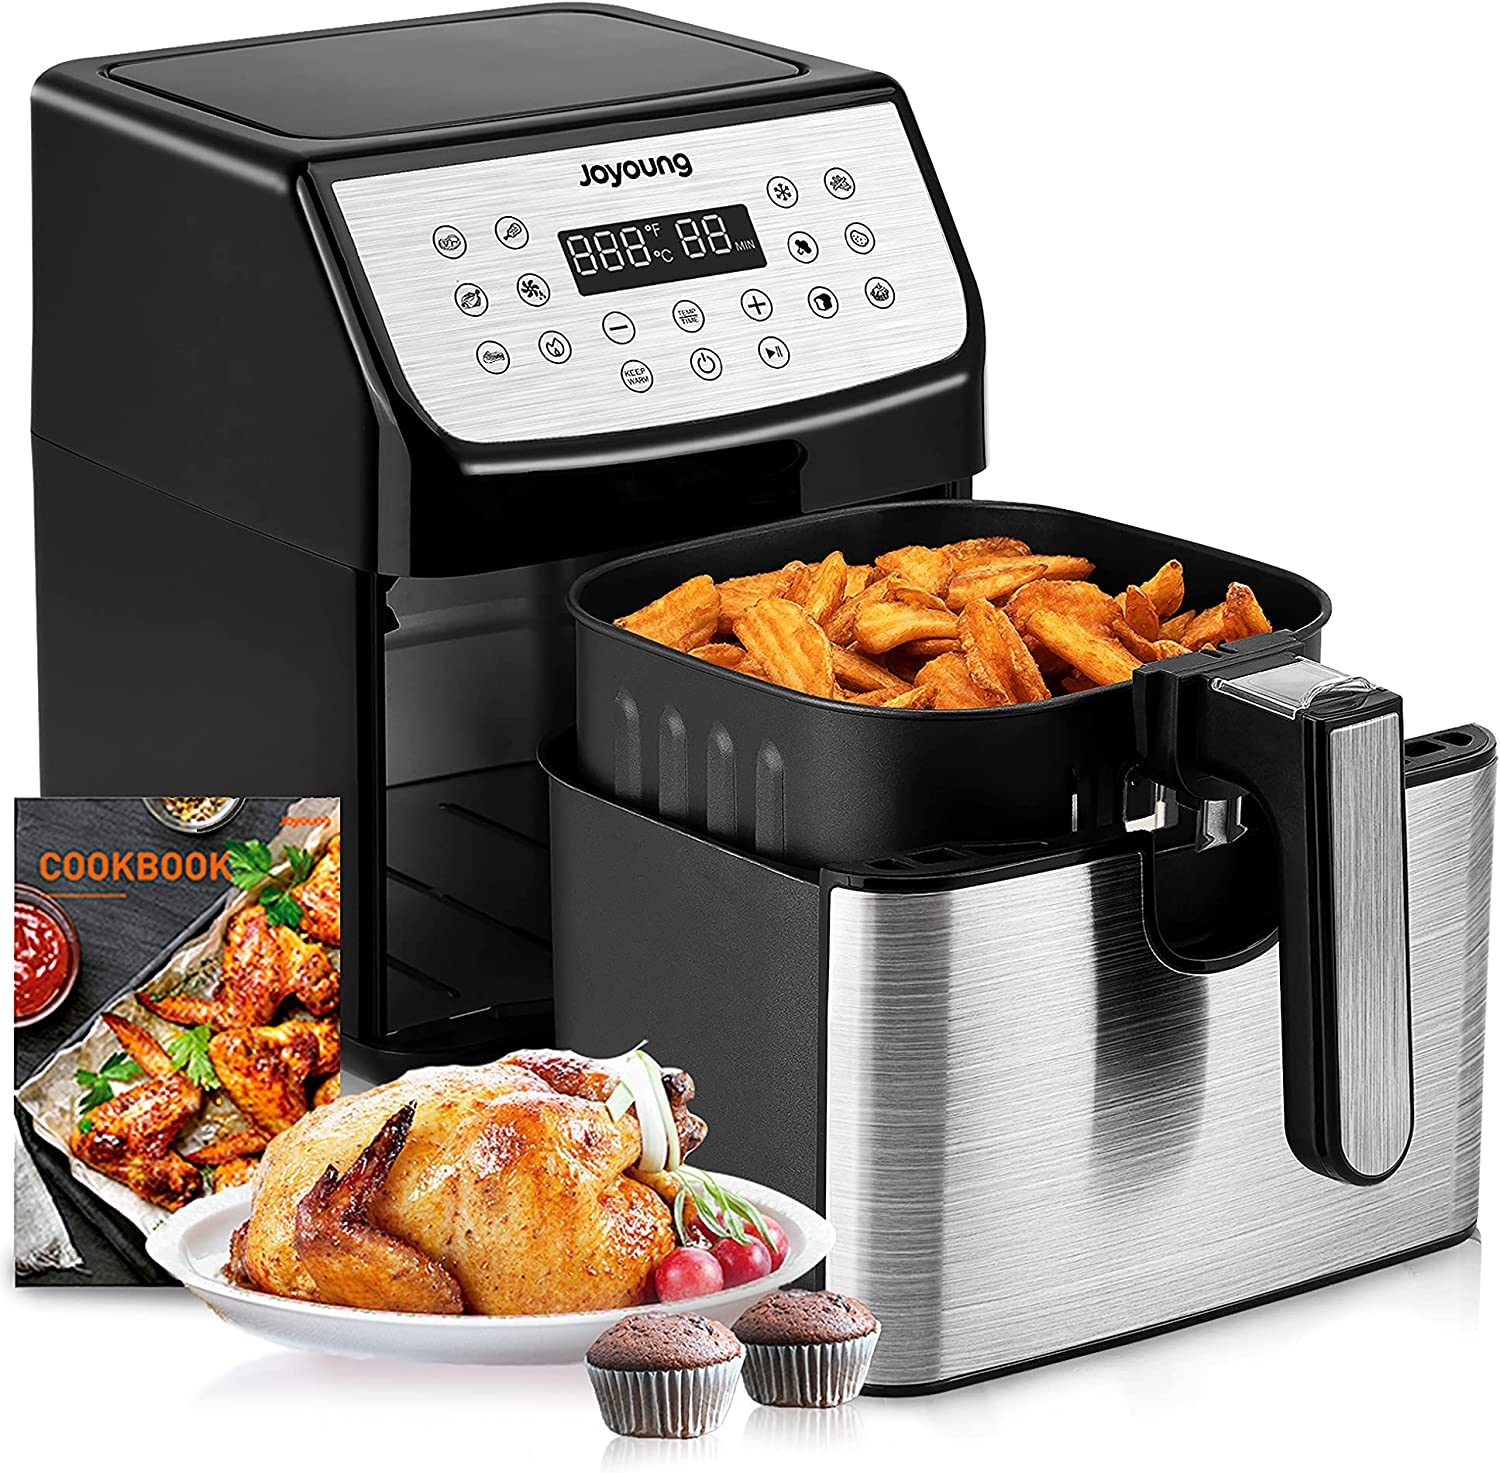 JOYOUNG Air Fryer 5.8QT Detachable Double Basket Air Fryers 1700W 13-in-1 Presets Airfryer One Touch LED Touchscreen Air Fryer Toaster Oven with Recipe